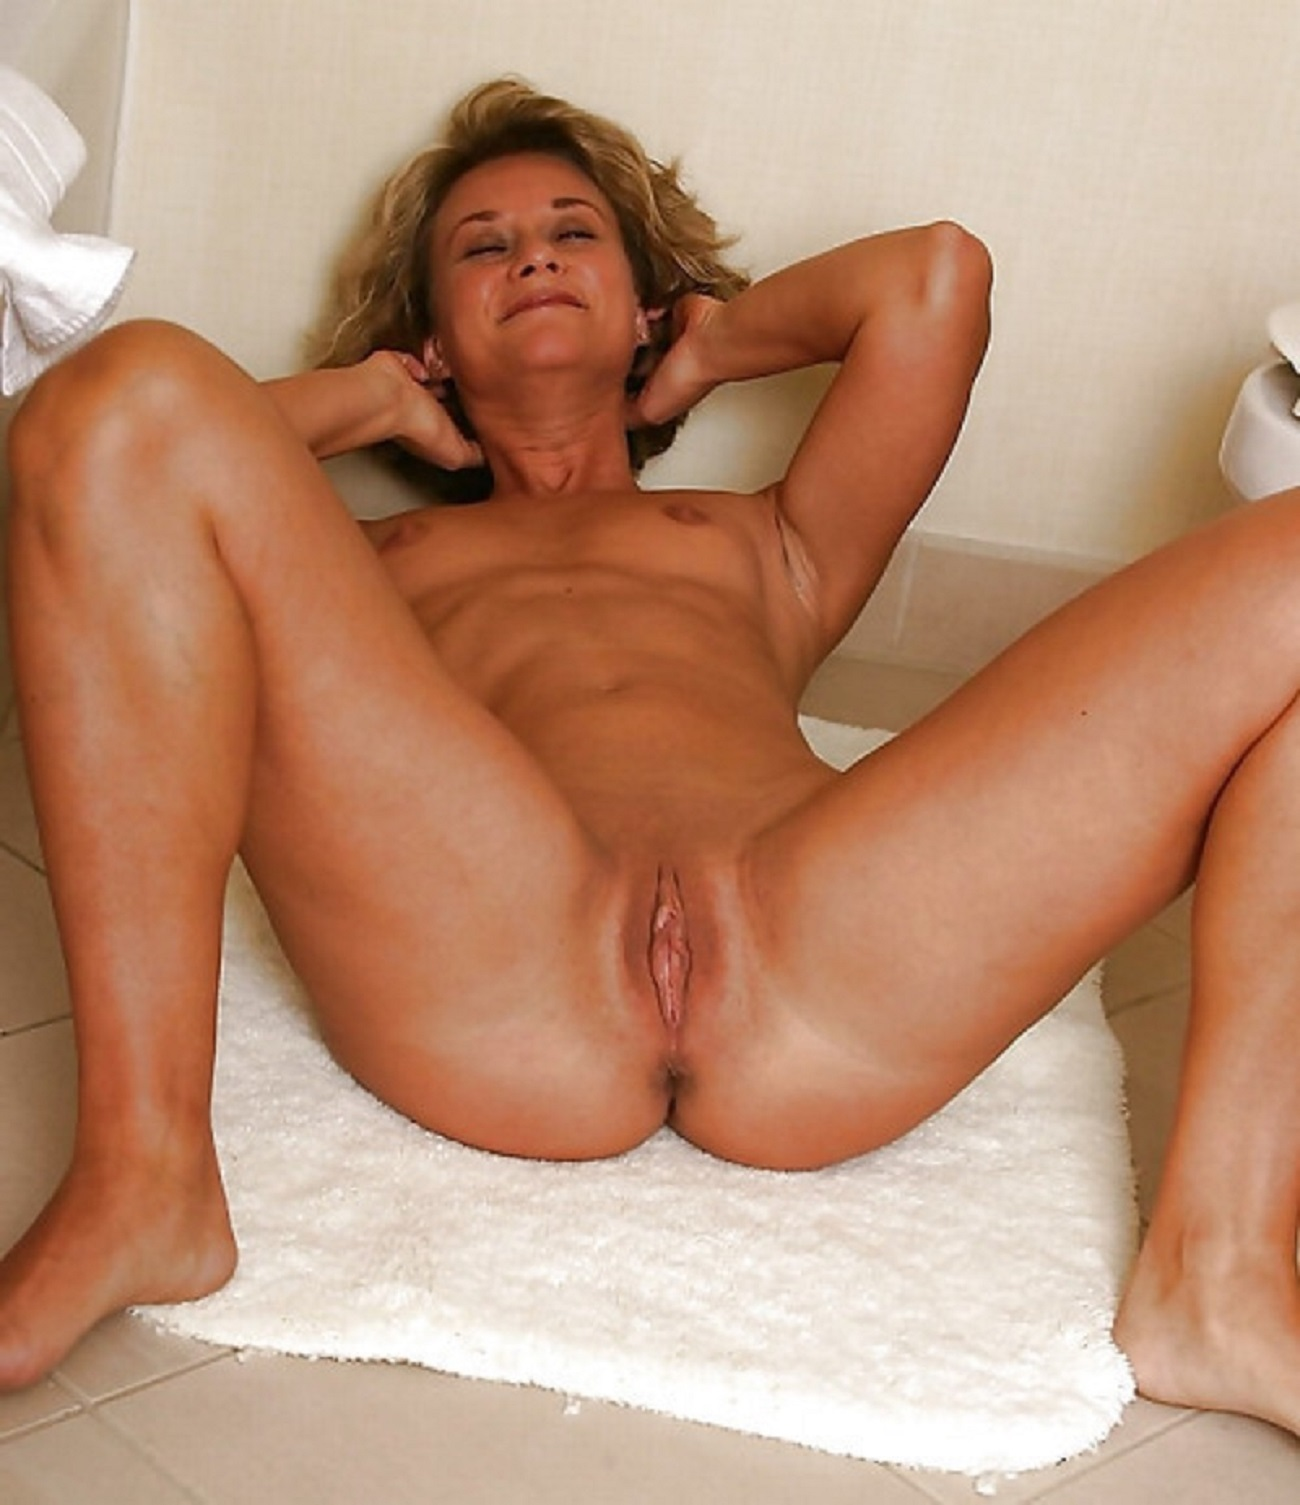 Tight housewife naked